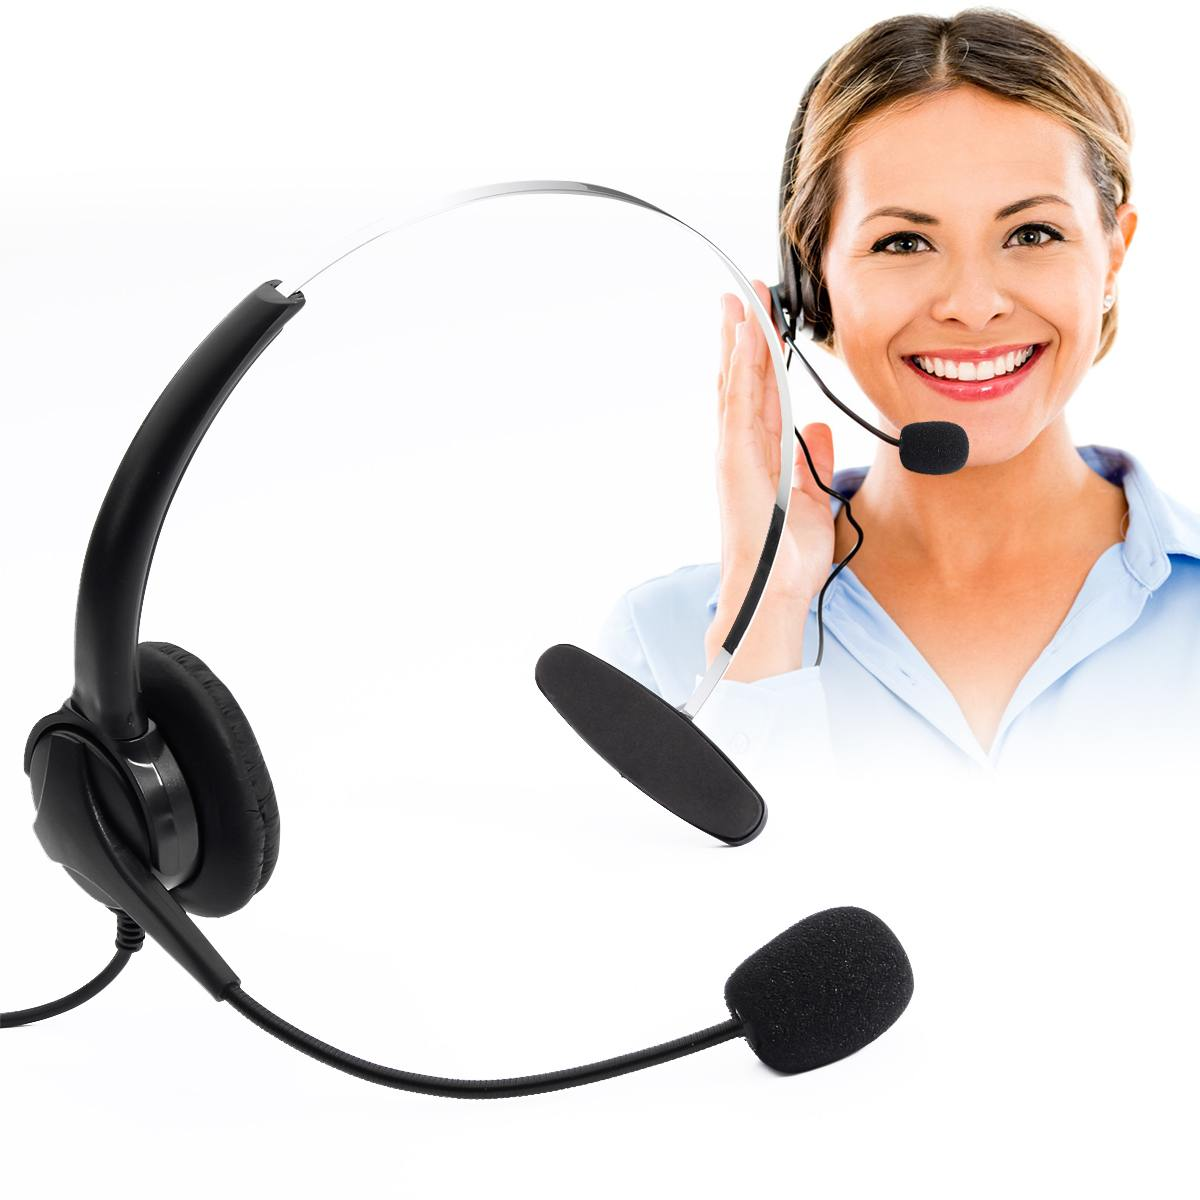 Headphone Call-Center Crystal-Head Cancelling Hands-Free RJ11 With Mic For Desk Binaural